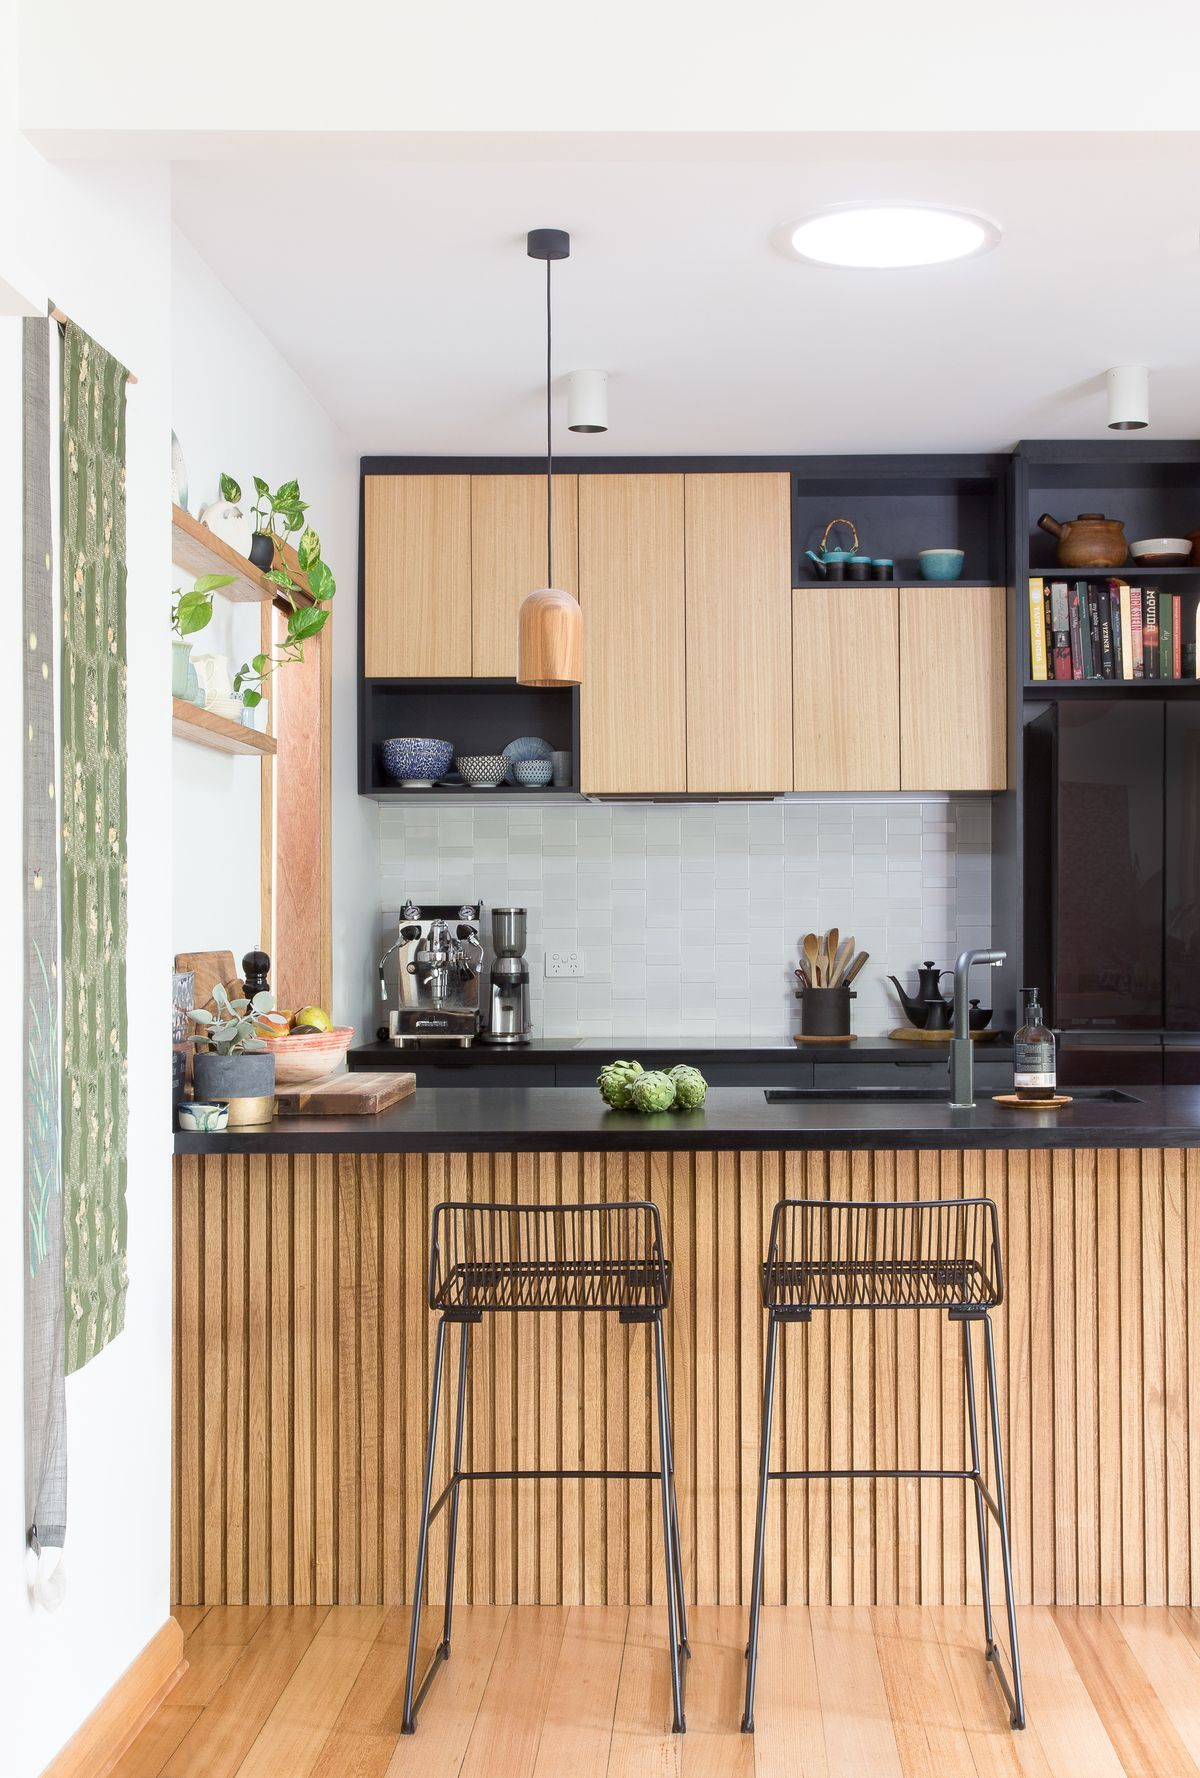 Gallery Of Collingwood Compact By Brave New Eco In Collingwood Vic Australia 3 Kitchen Interior Kitchen Inspiration Design Interior Design Kitchen